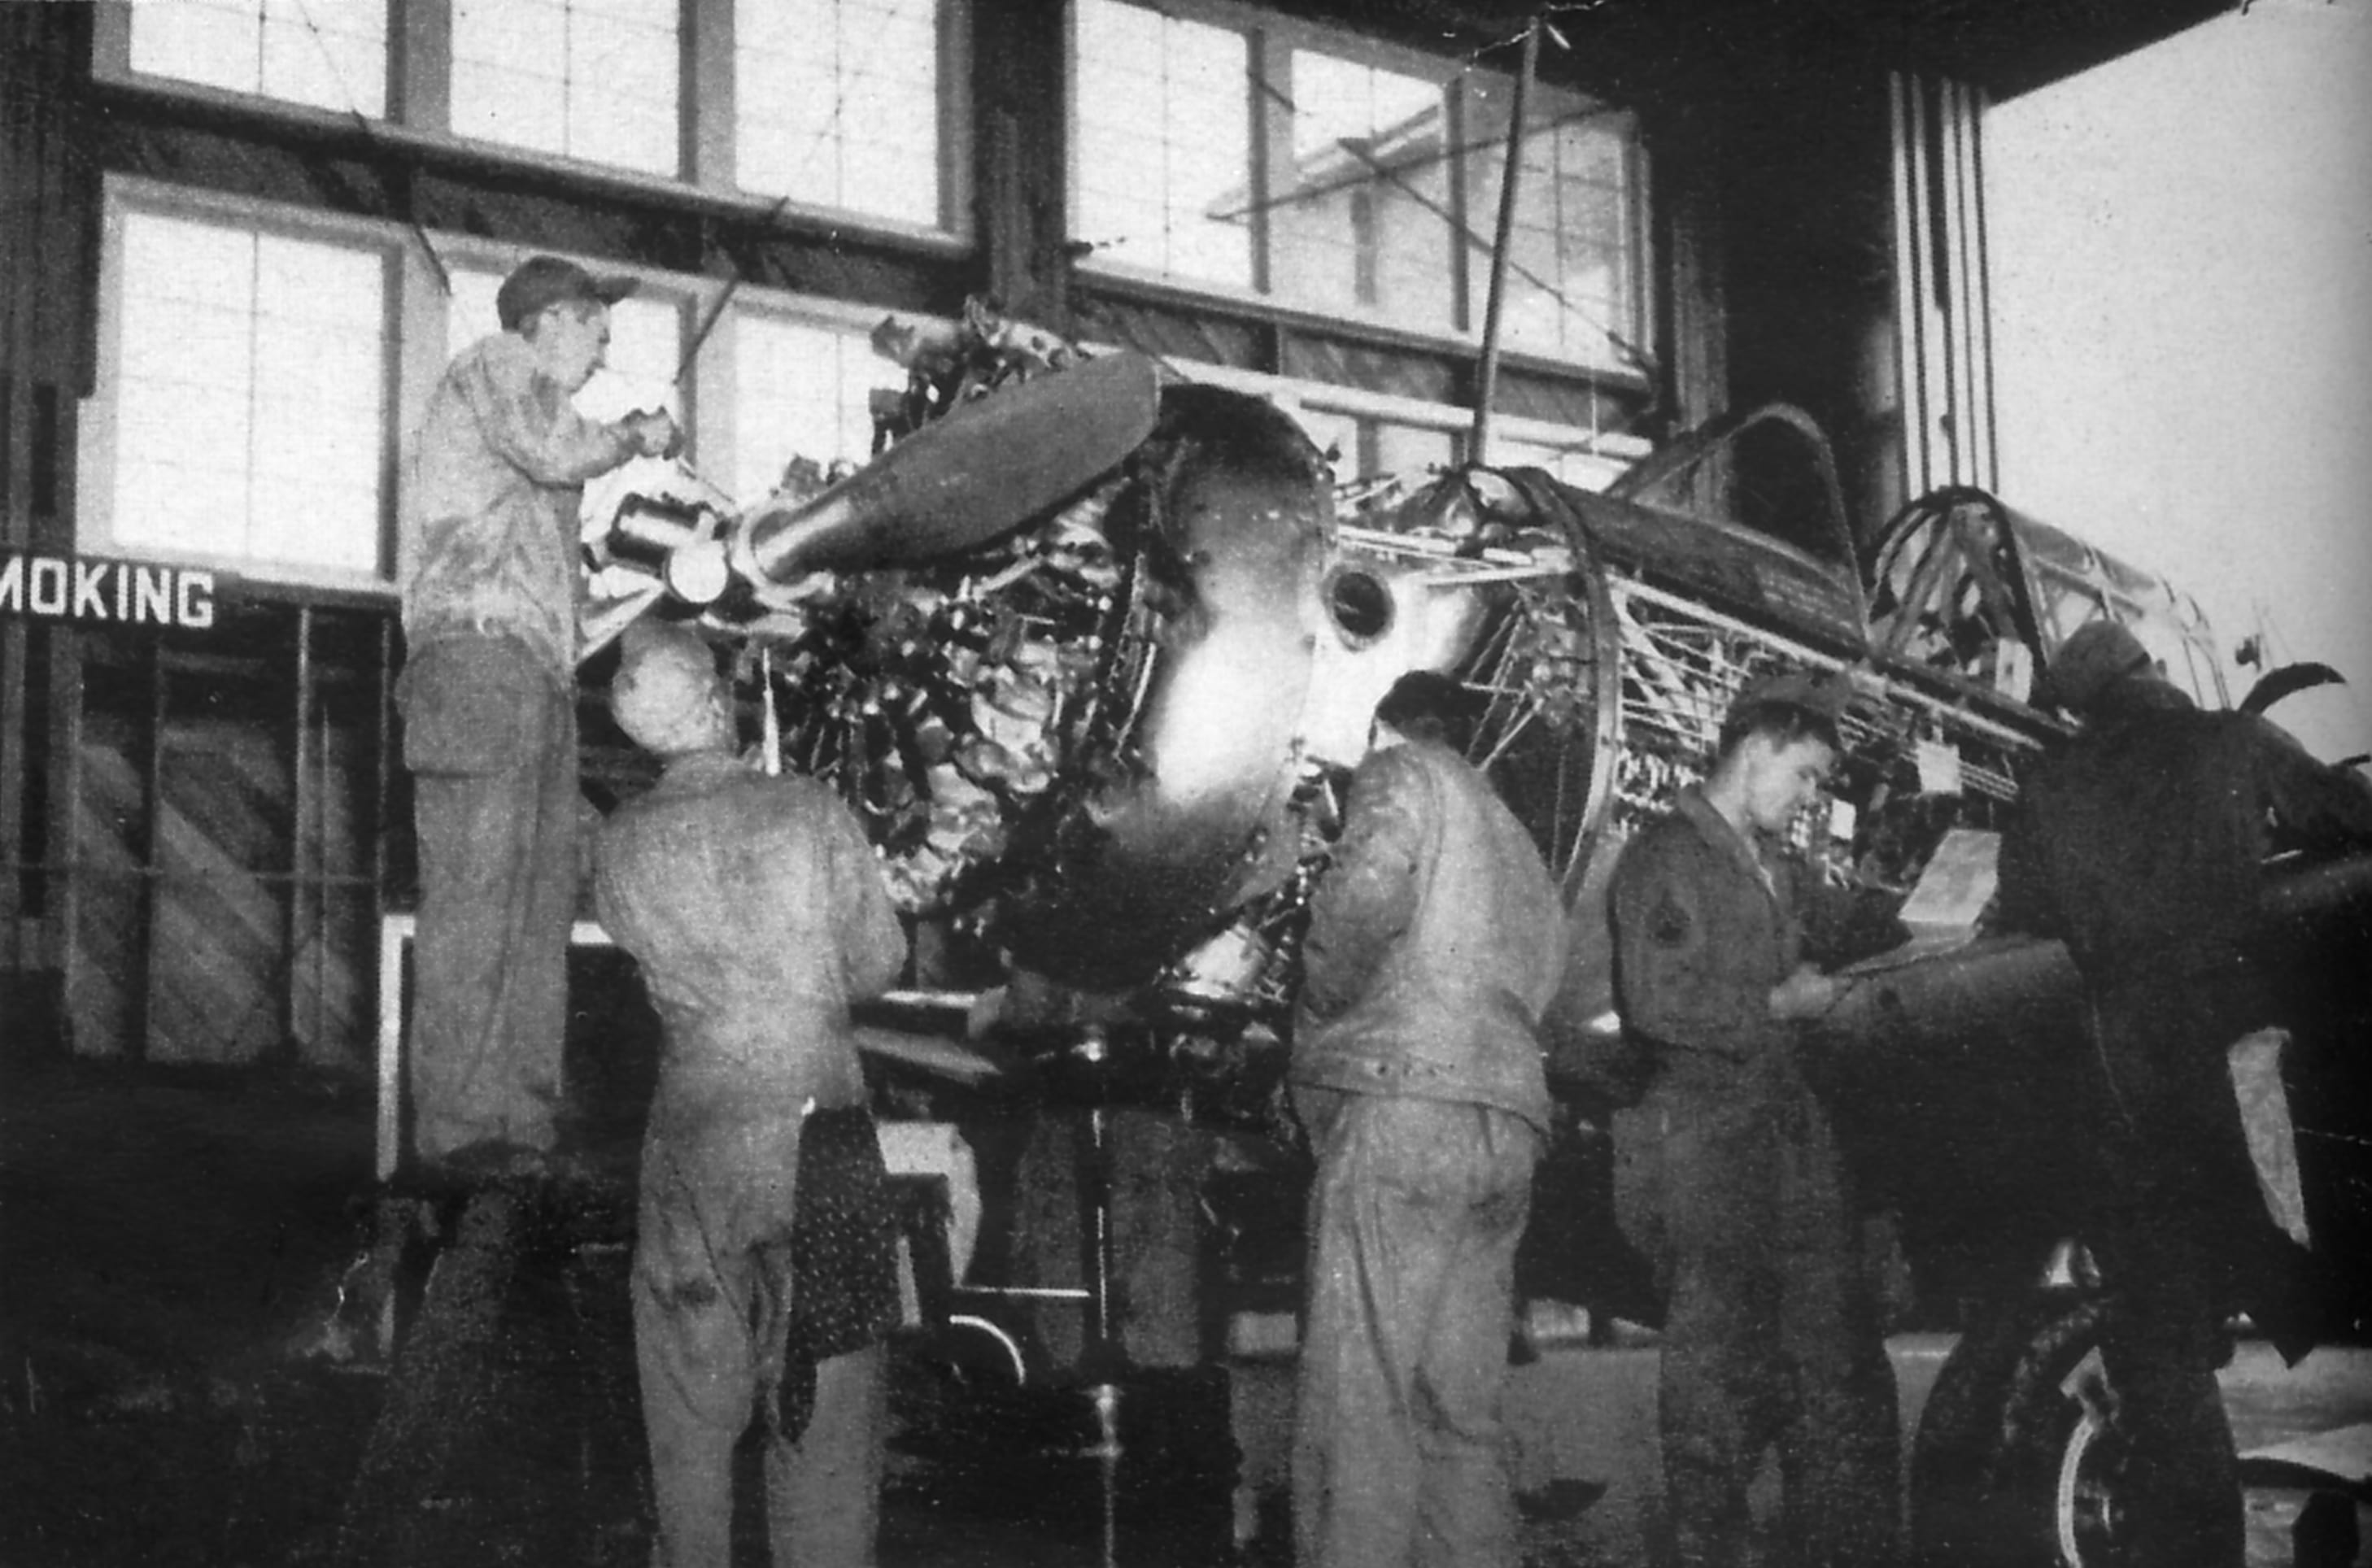 1940's – Airbase – Maintenance